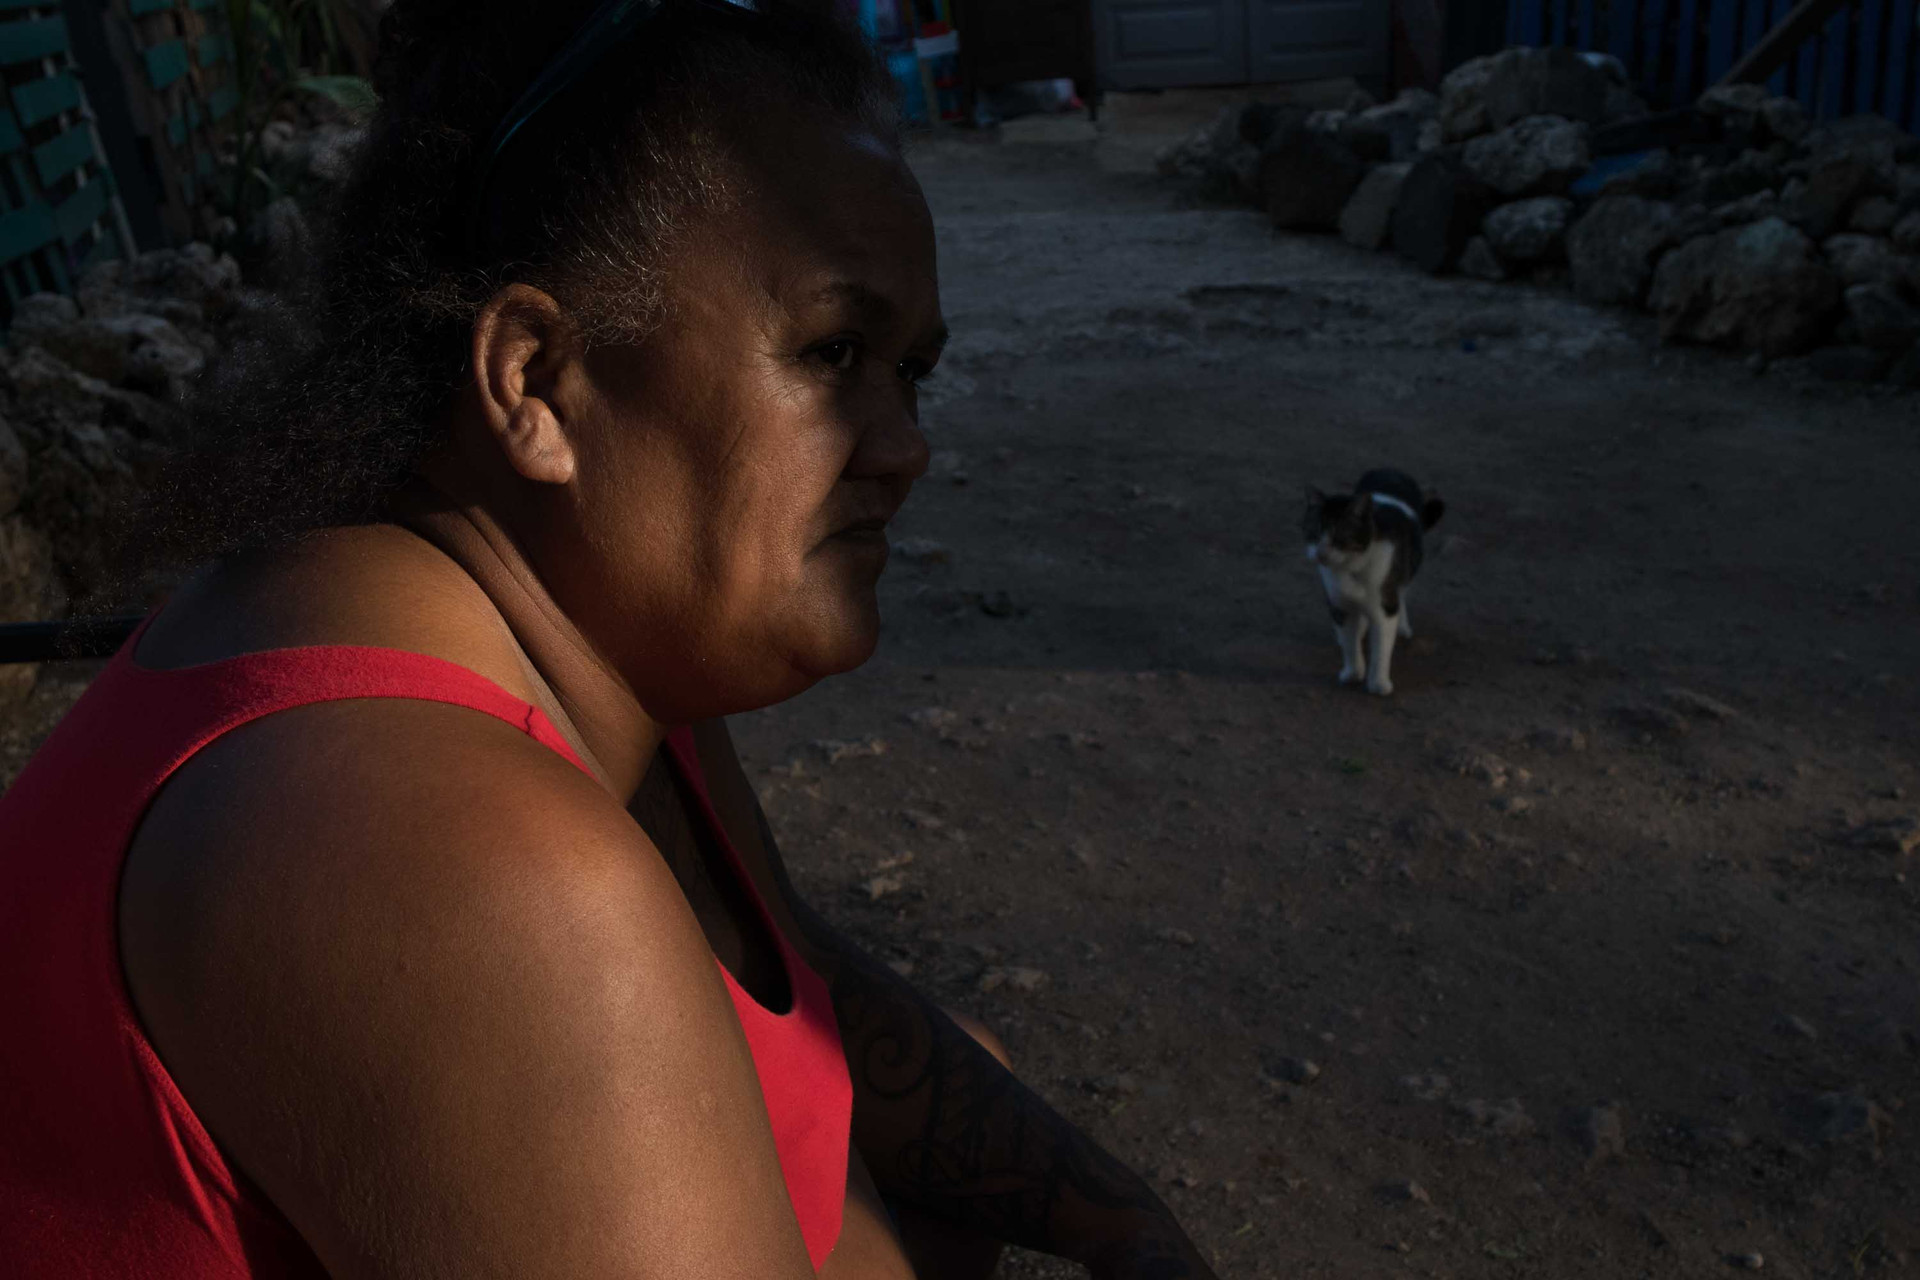 """Twinkle Borge, leader of Pu'uhonua O Wai'anae has been living there since 2003. To her, this place is only place she knew that she can call 'Home."""""""